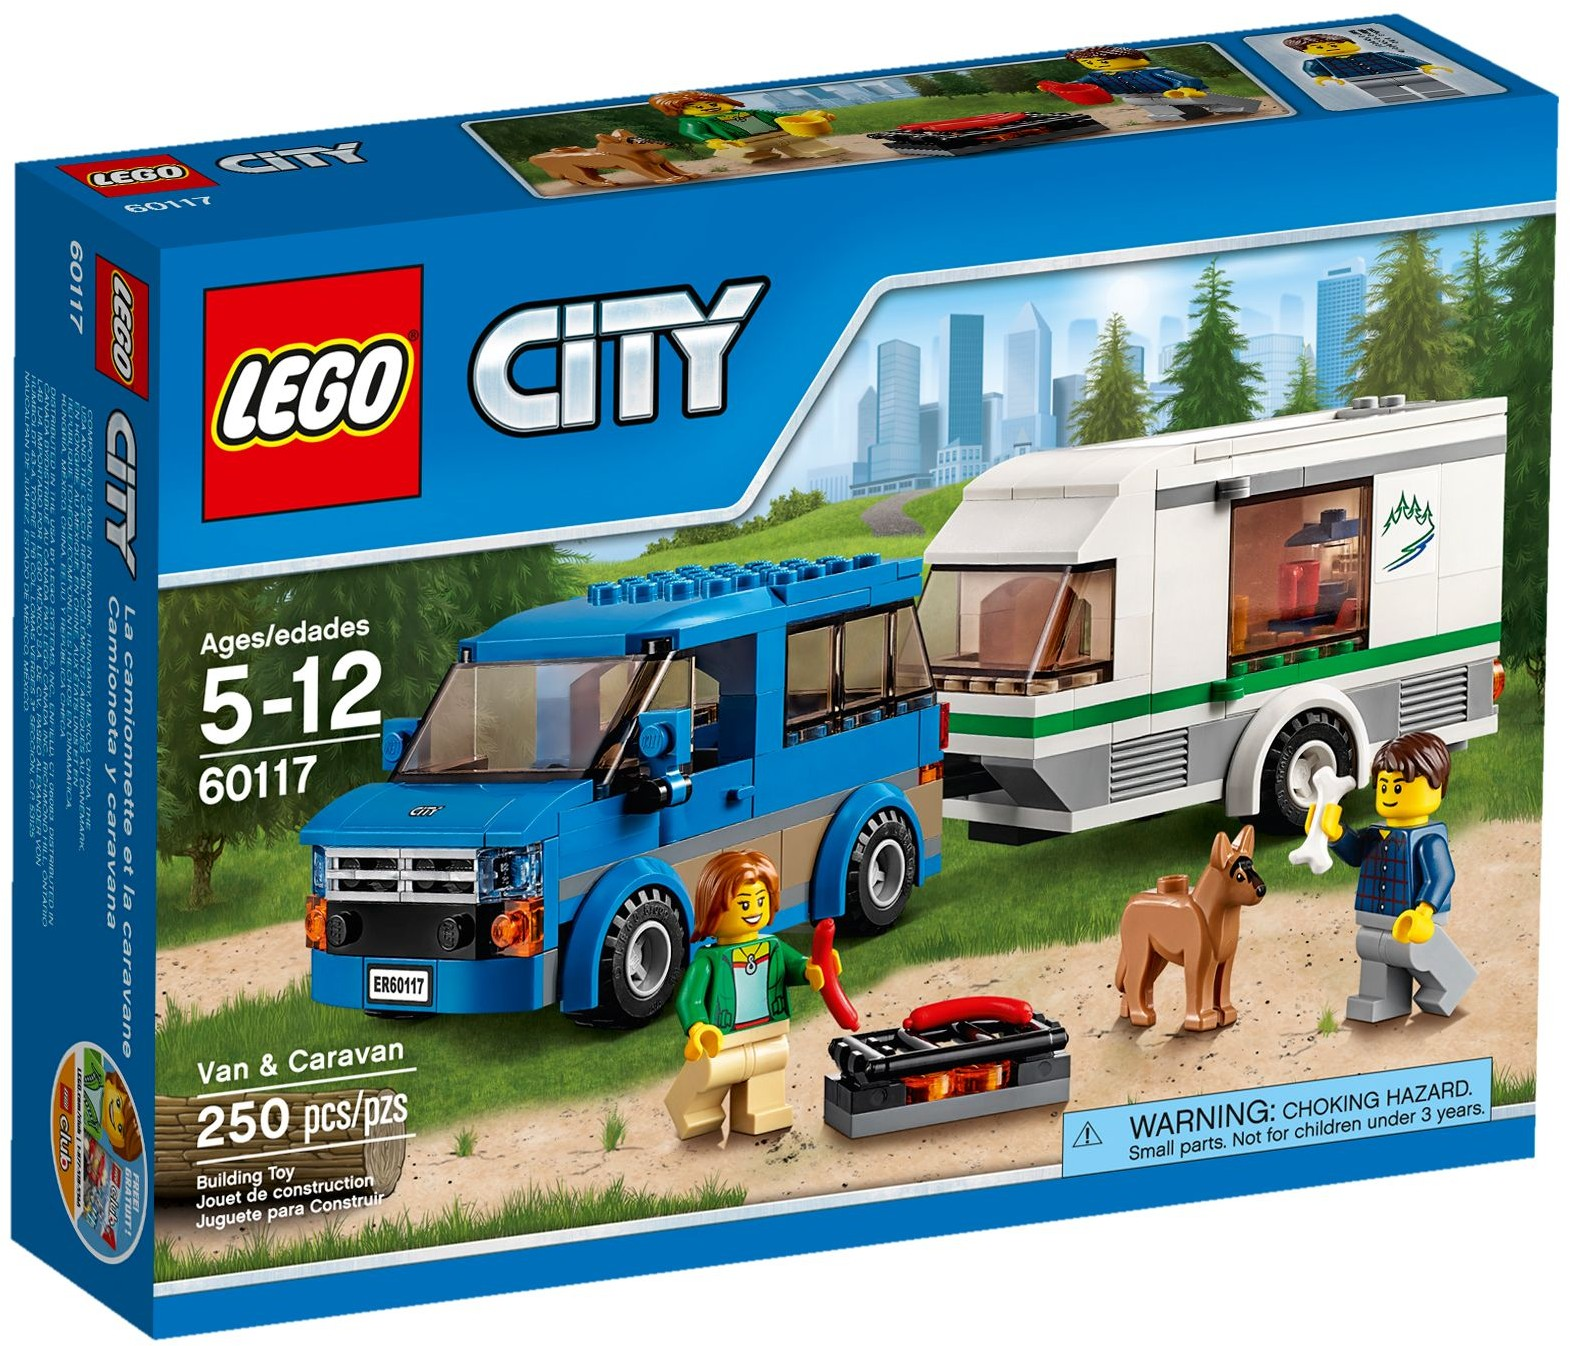 lego city 60117 pas cher la camionnette et sa caravane. Black Bedroom Furniture Sets. Home Design Ideas